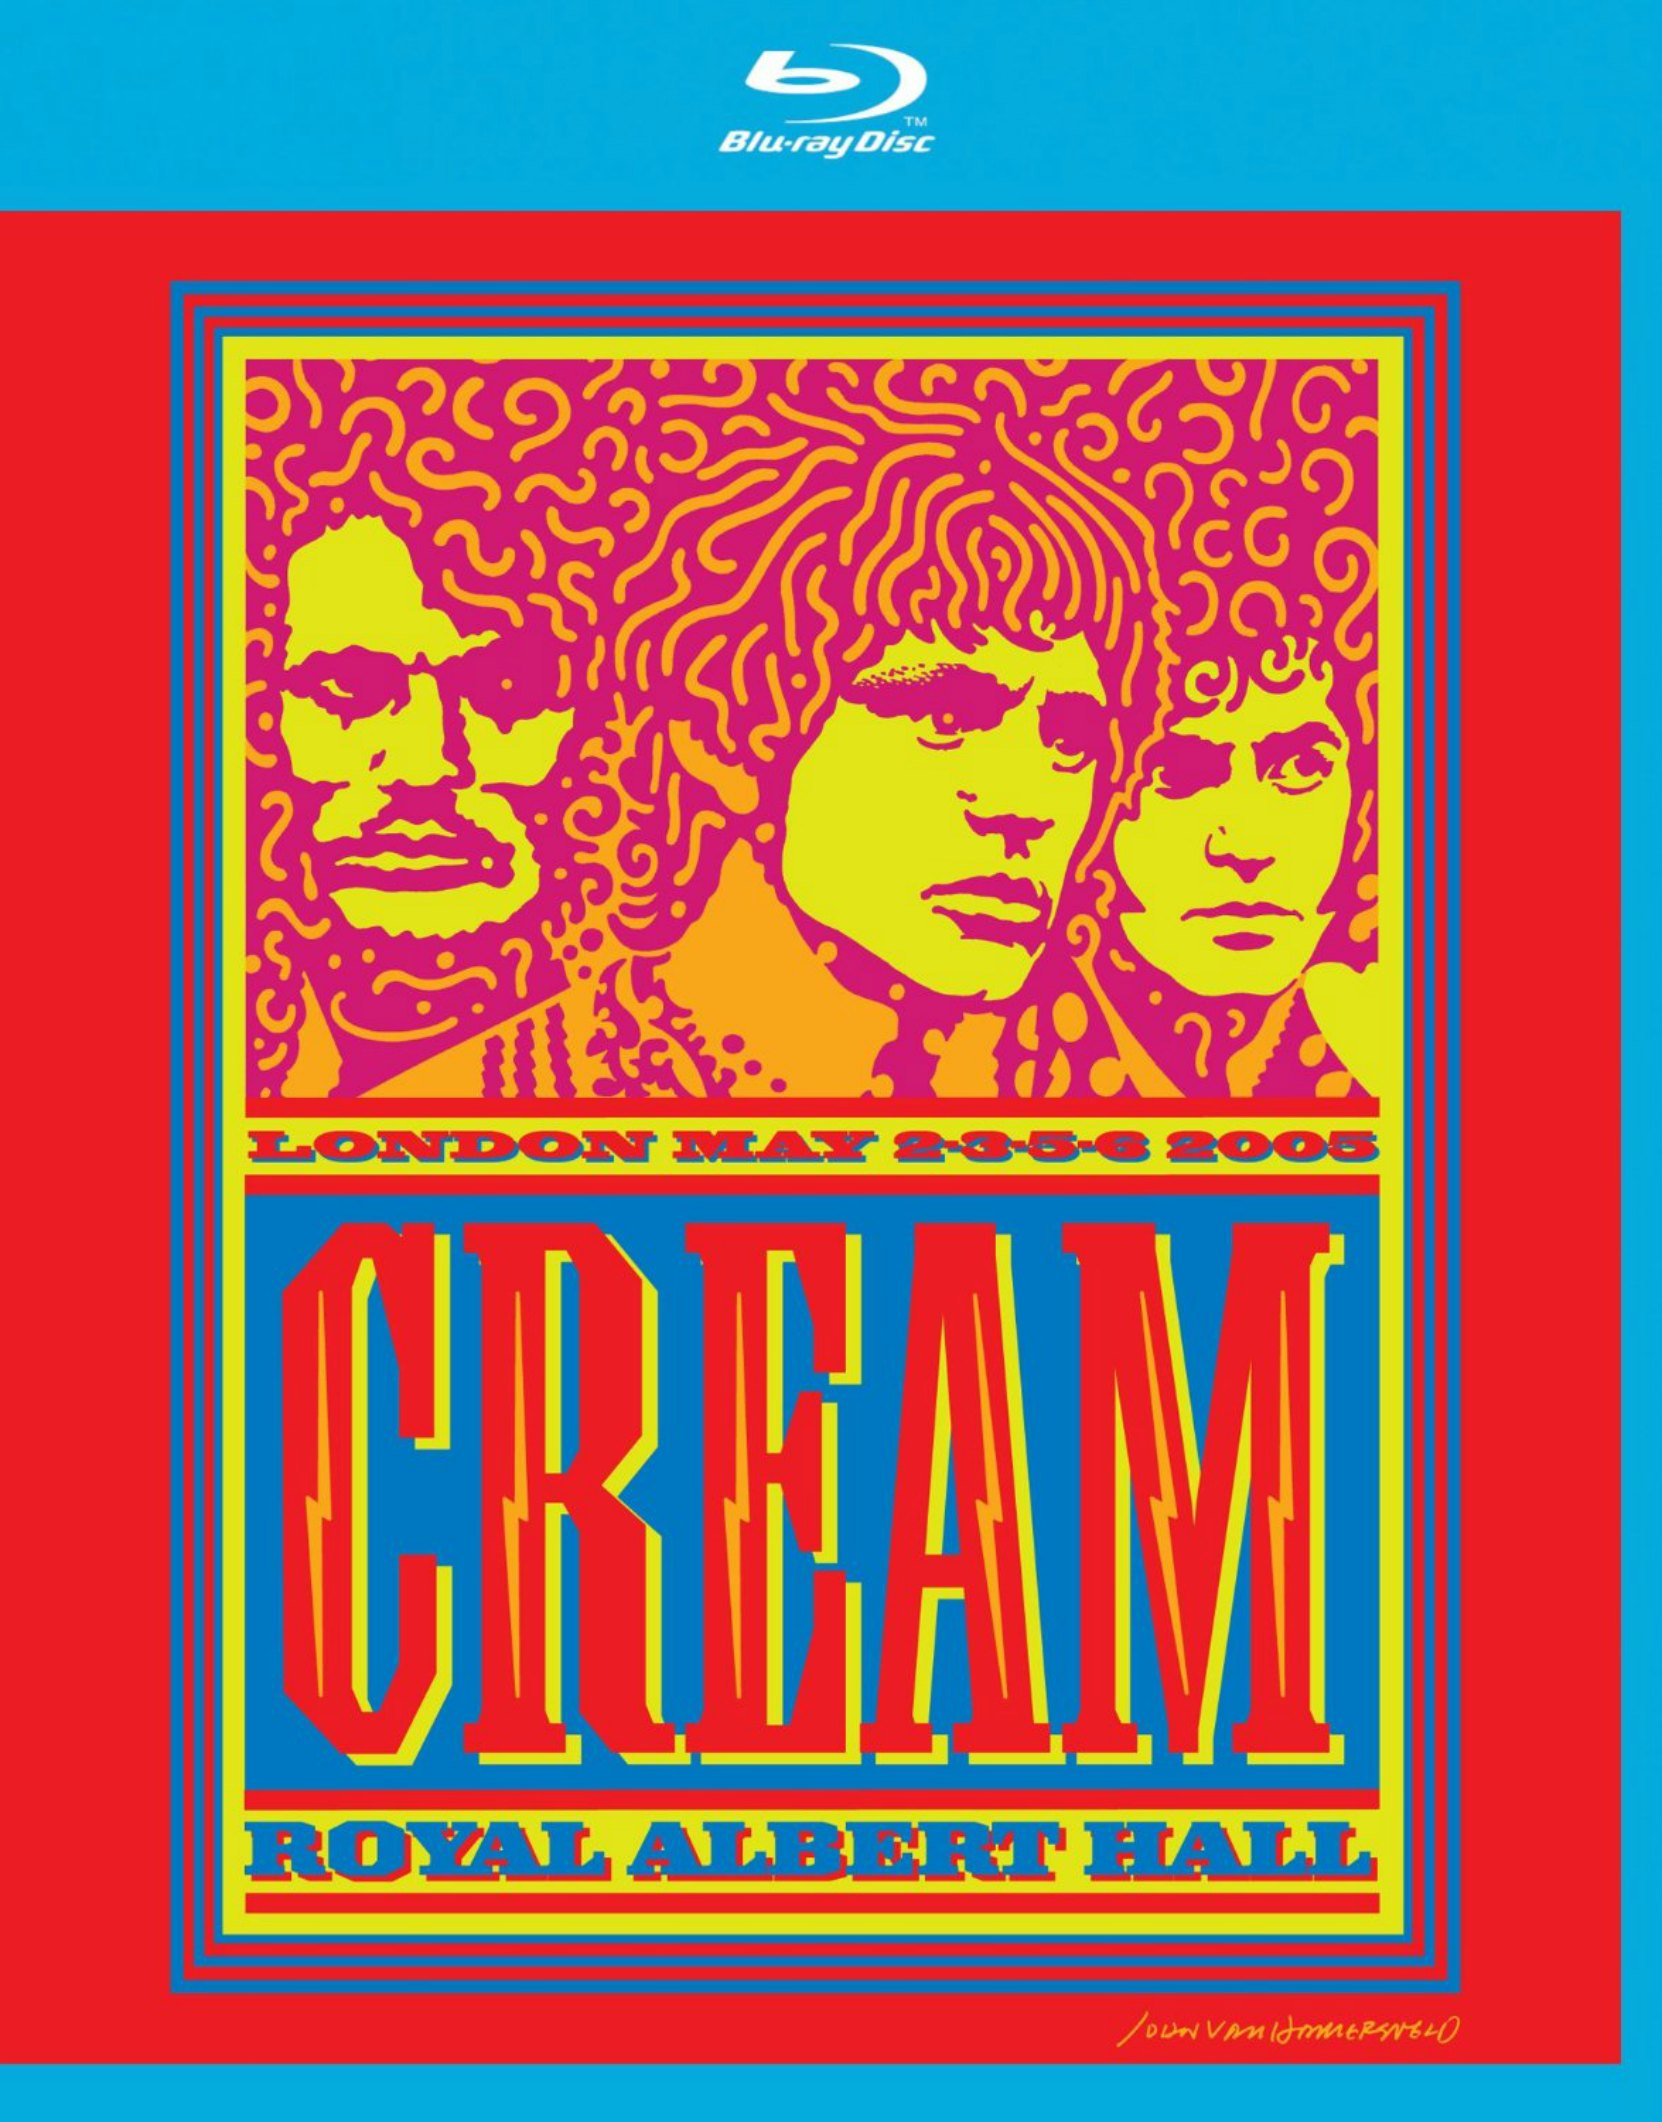 Cream, Live at the Royal Albert Hall 2005 - Blu-ray cover